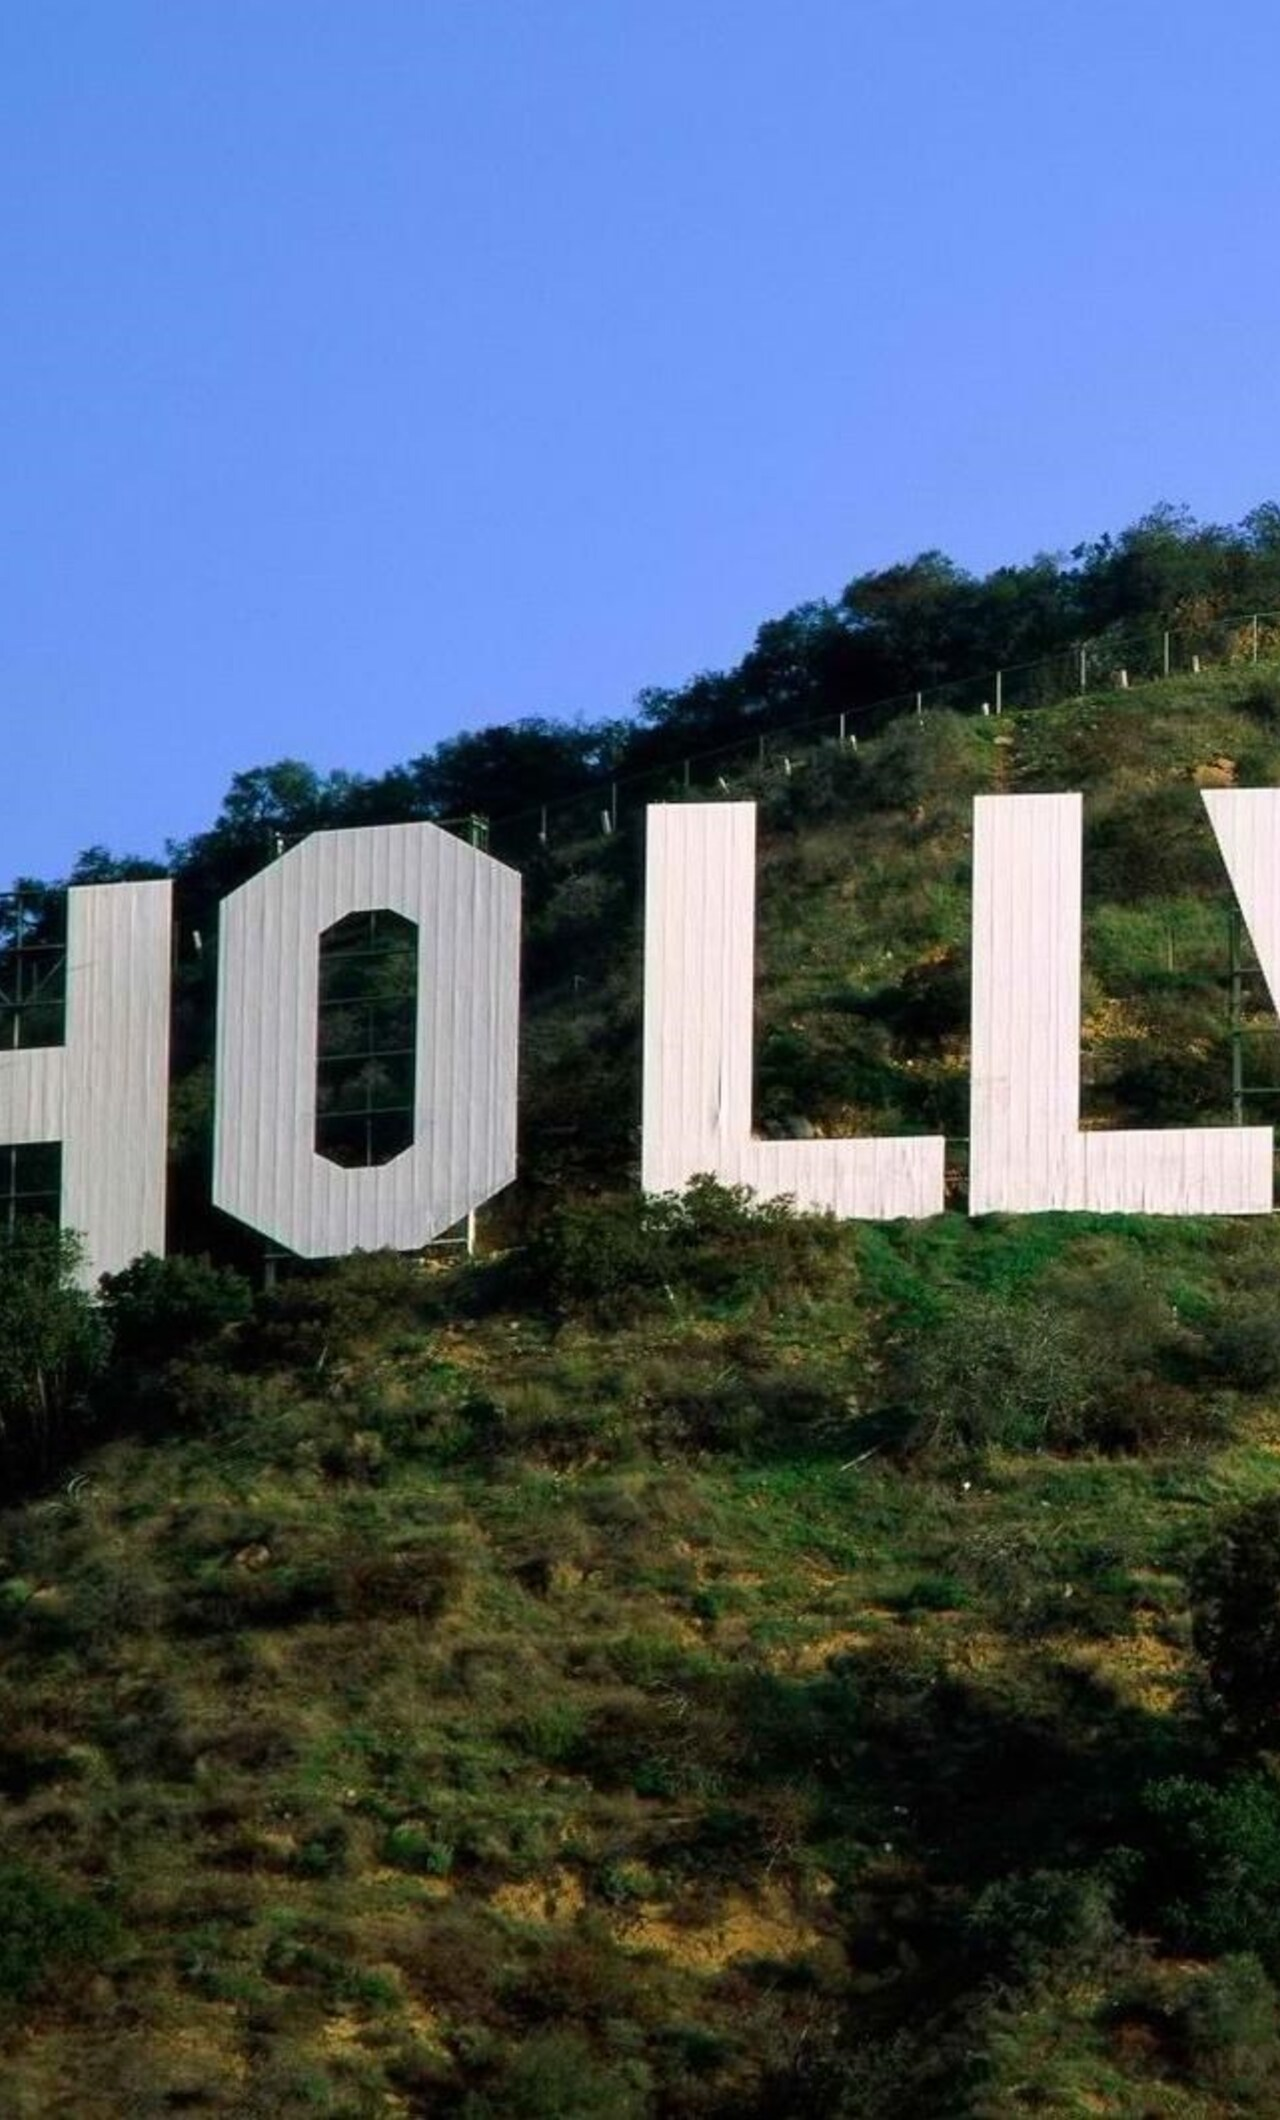 1280x2120 hollywood mountains iphone 6+ hd 4k wallpapers, images